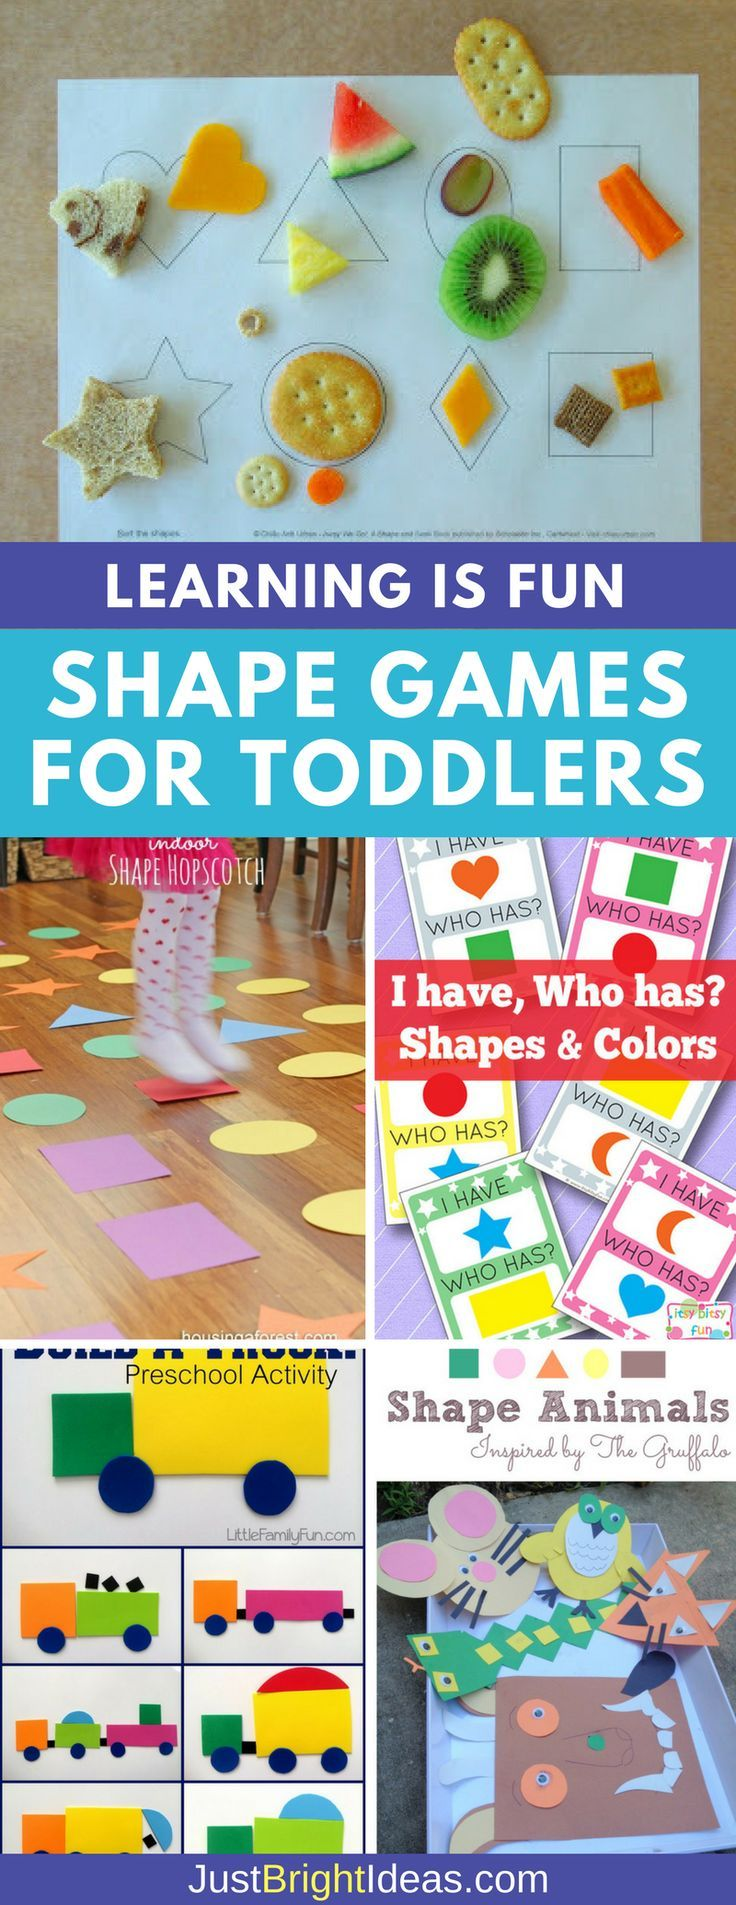 Learning the different shapes is really important for toddlers as they are key to pre-math and logic and pre-reading and writing skills. Check out these fun shape games for toddlers many of which will help put their excess energy to good use!